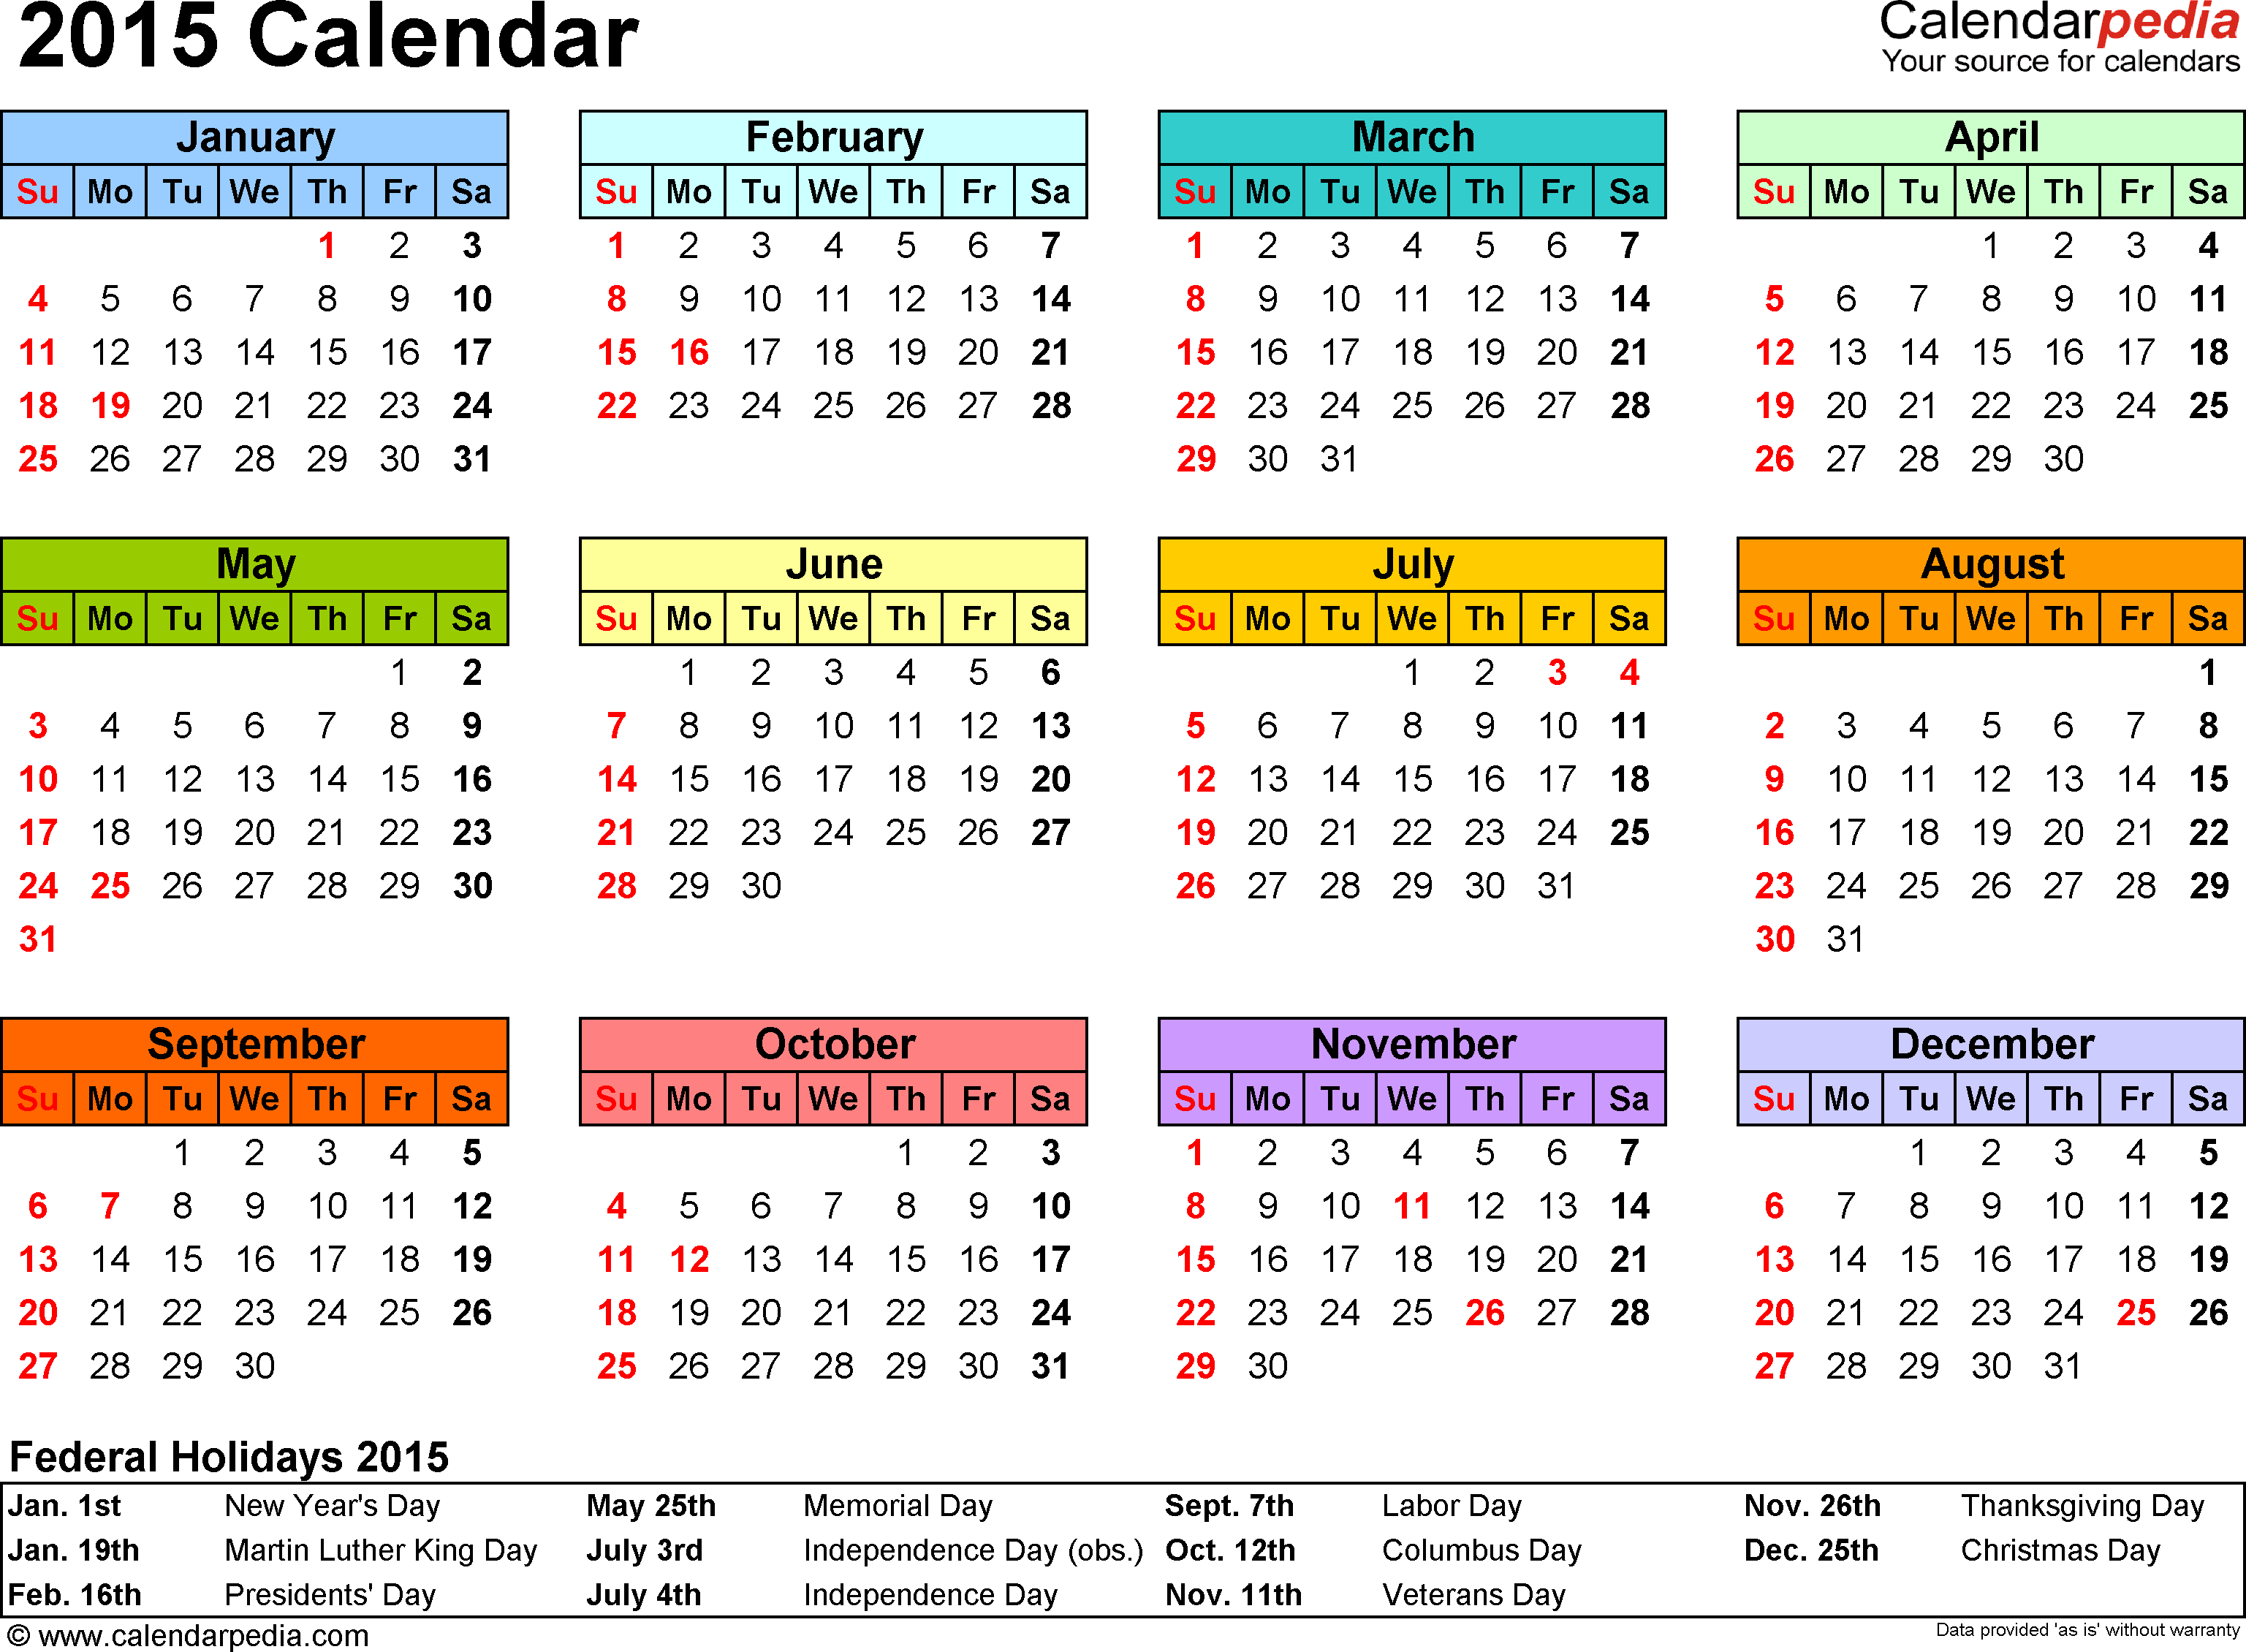 2015 Calendars | 2015 Calendar Excel   Download 14 Free Printable Templates  (.xls)